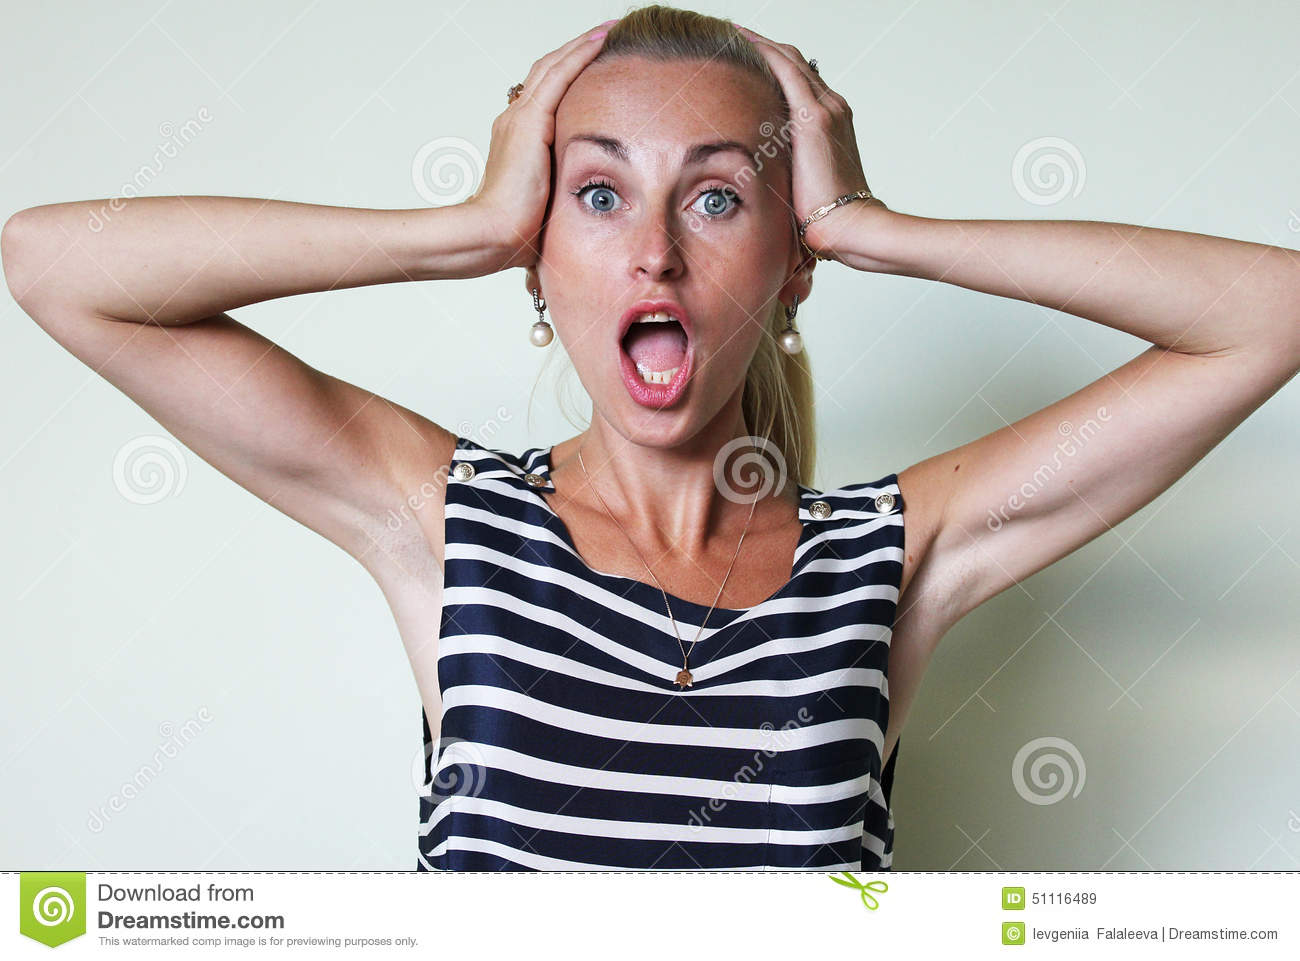 An astonished woman with open mouth